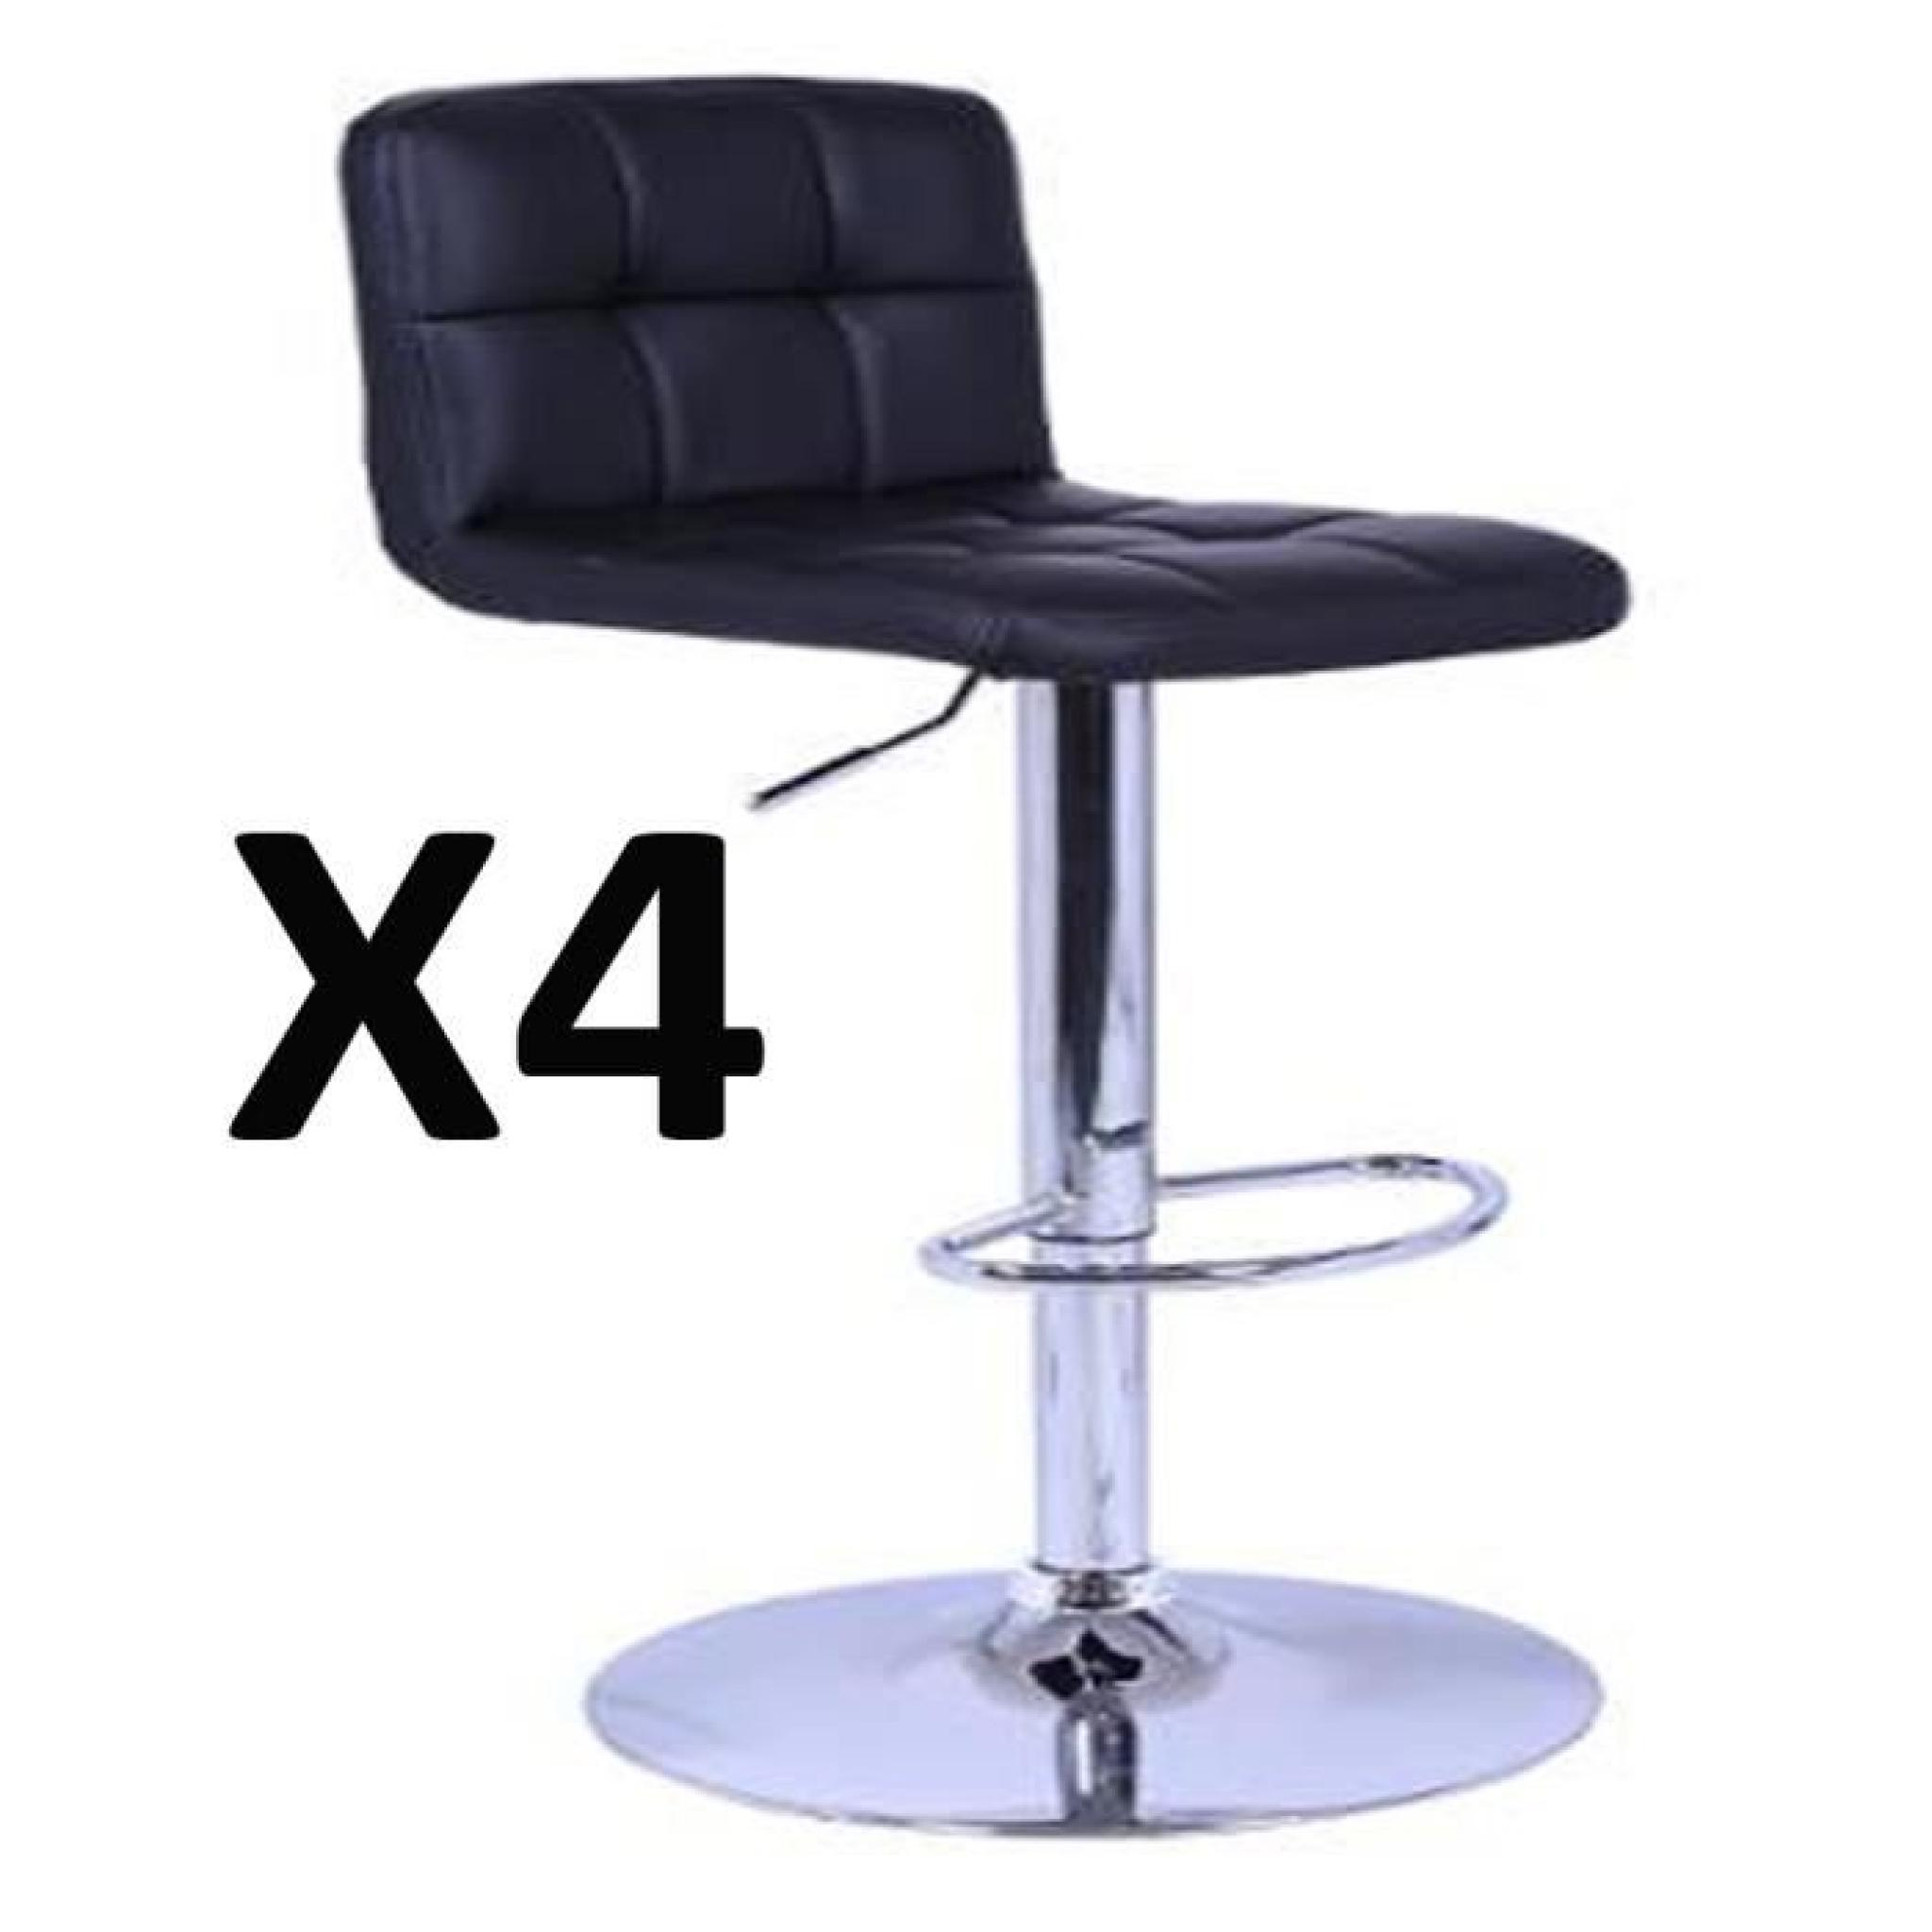 Set De 1 Table Bar Et 4 Tabourets Noir 4 Tabourets De Bar Ikea Chaise De Bar 221328 Lot De 4